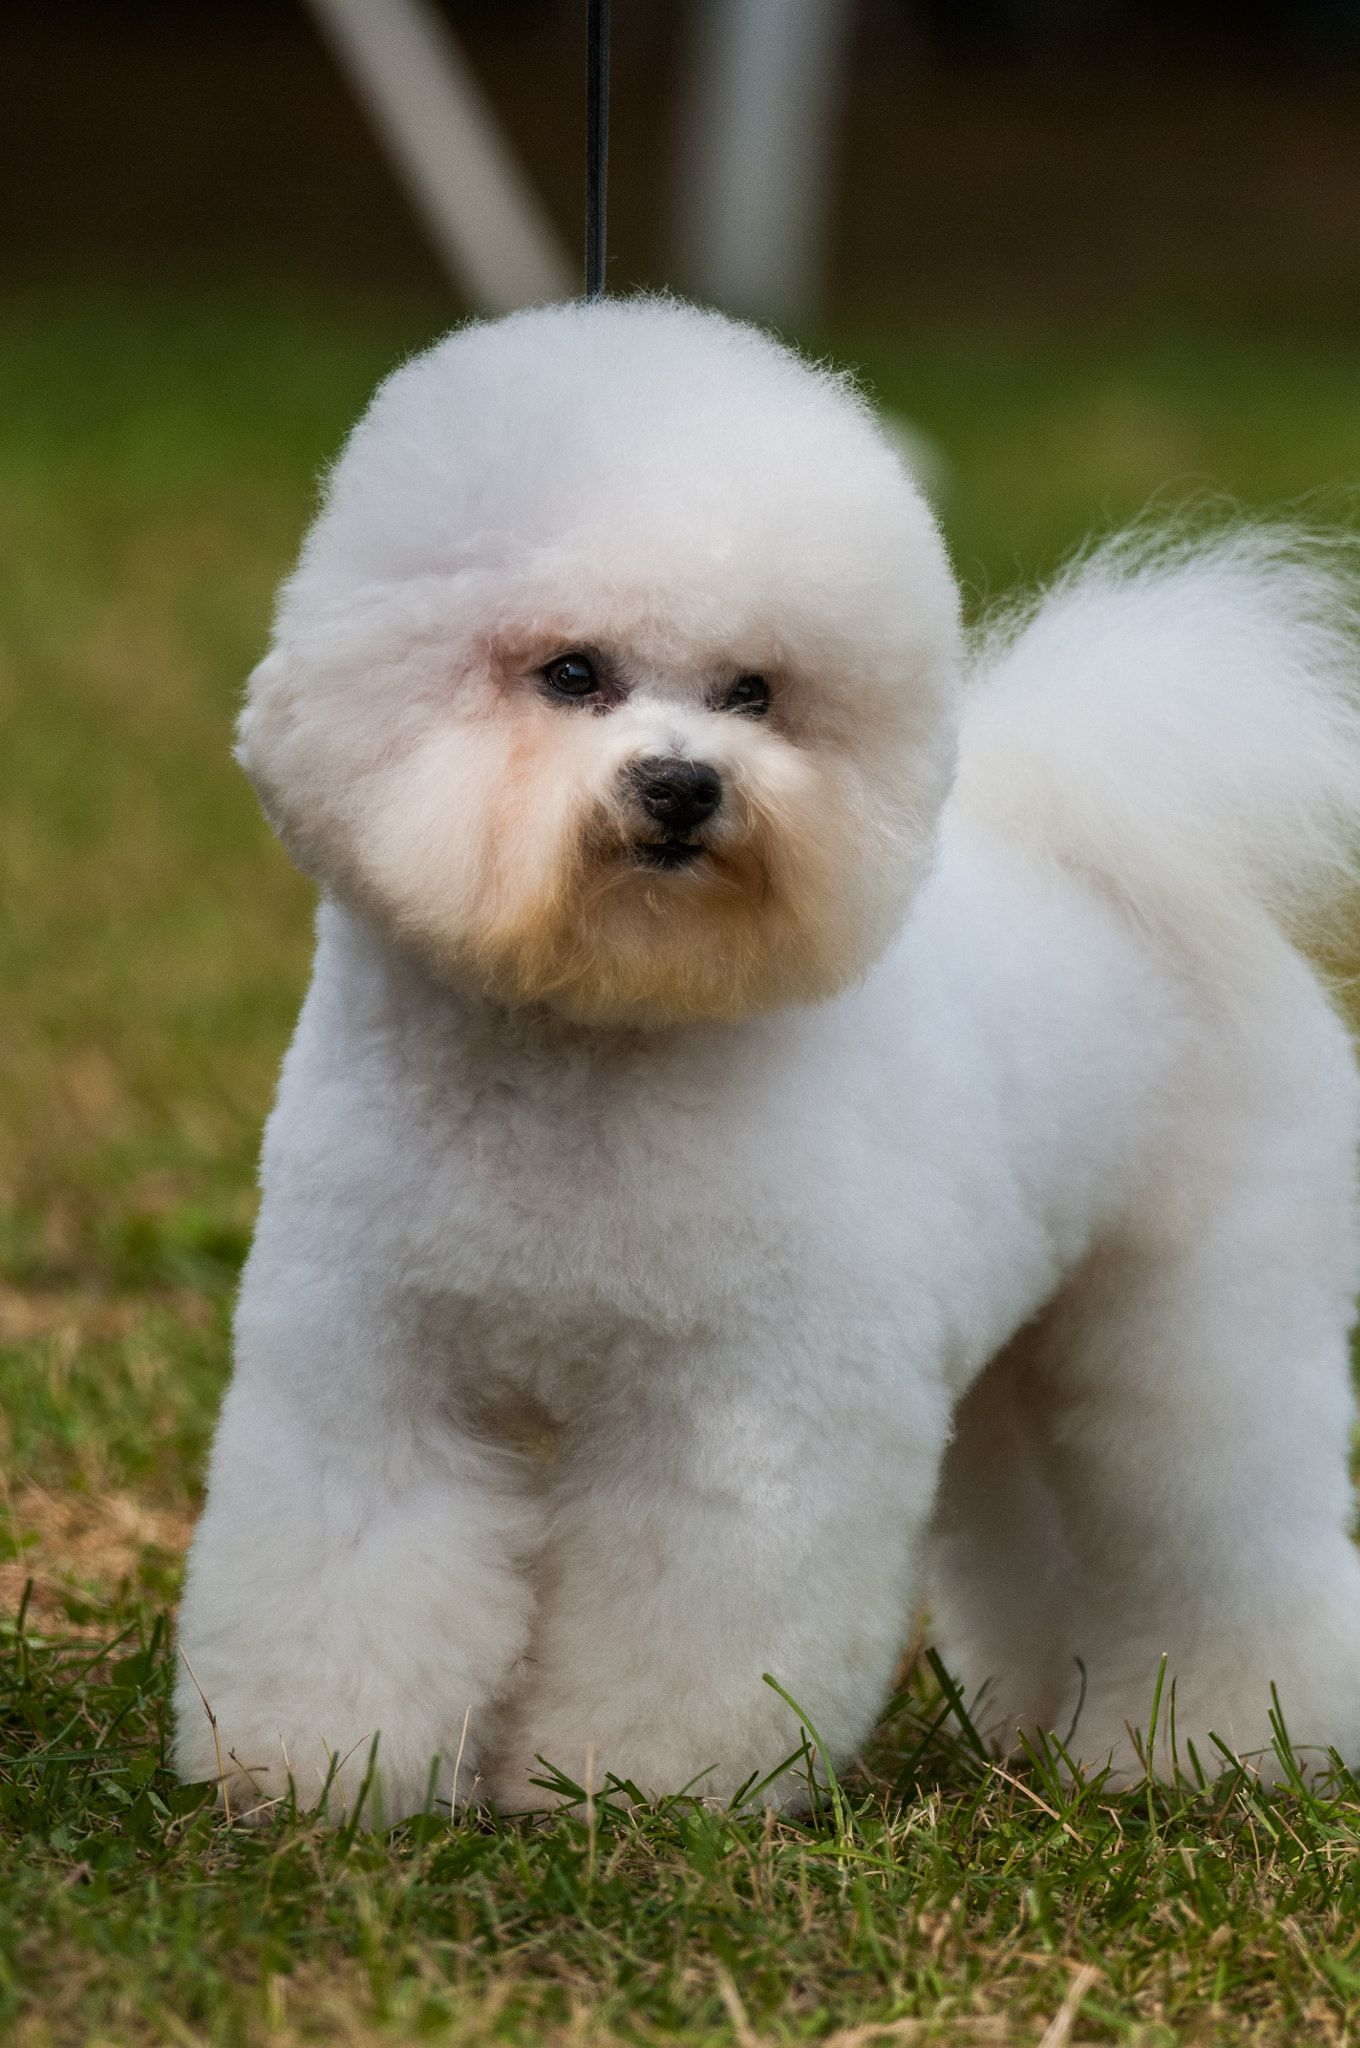 Bichon Frise Bichon Frise Showing At Hickories Circuit Dog Show In Upstate Ny In 2020 Bichon Frise Unique Dog Breeds Bichon